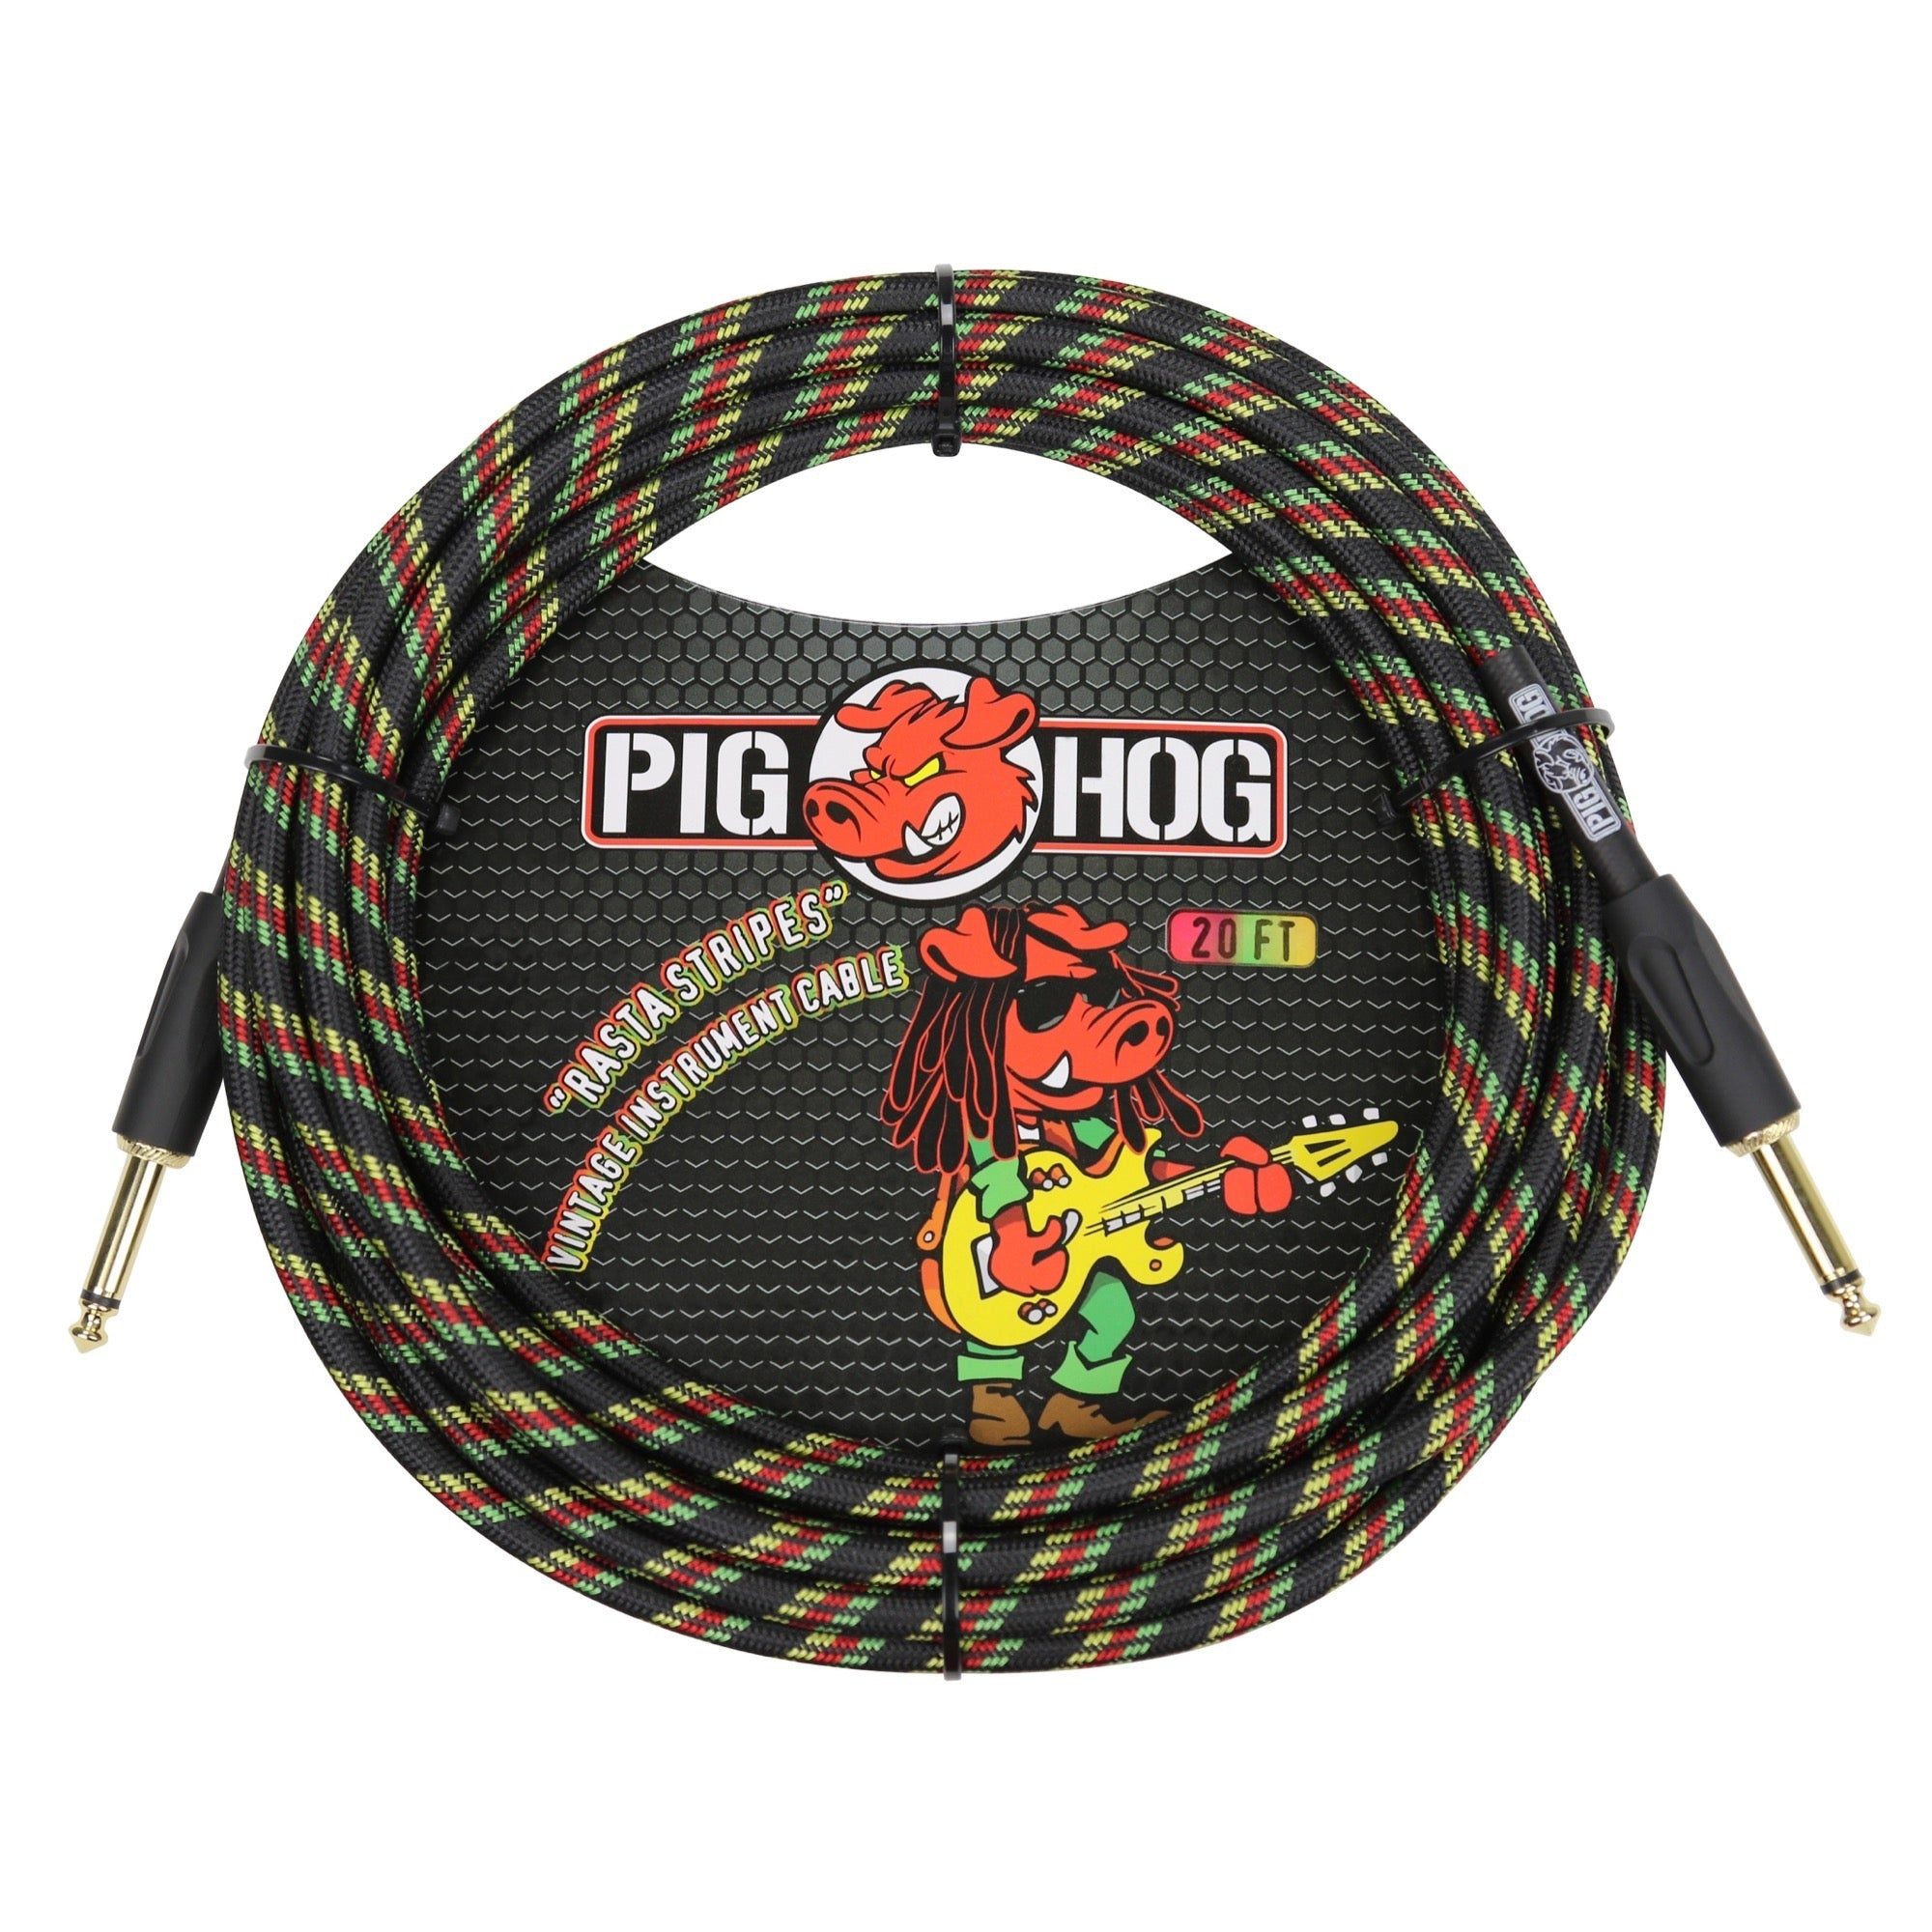 Pig Hog Vintage Series Instrument Cable, 1/4 Inch Straight to 1/4 Inch Straight, Rasta Stripes, 20'